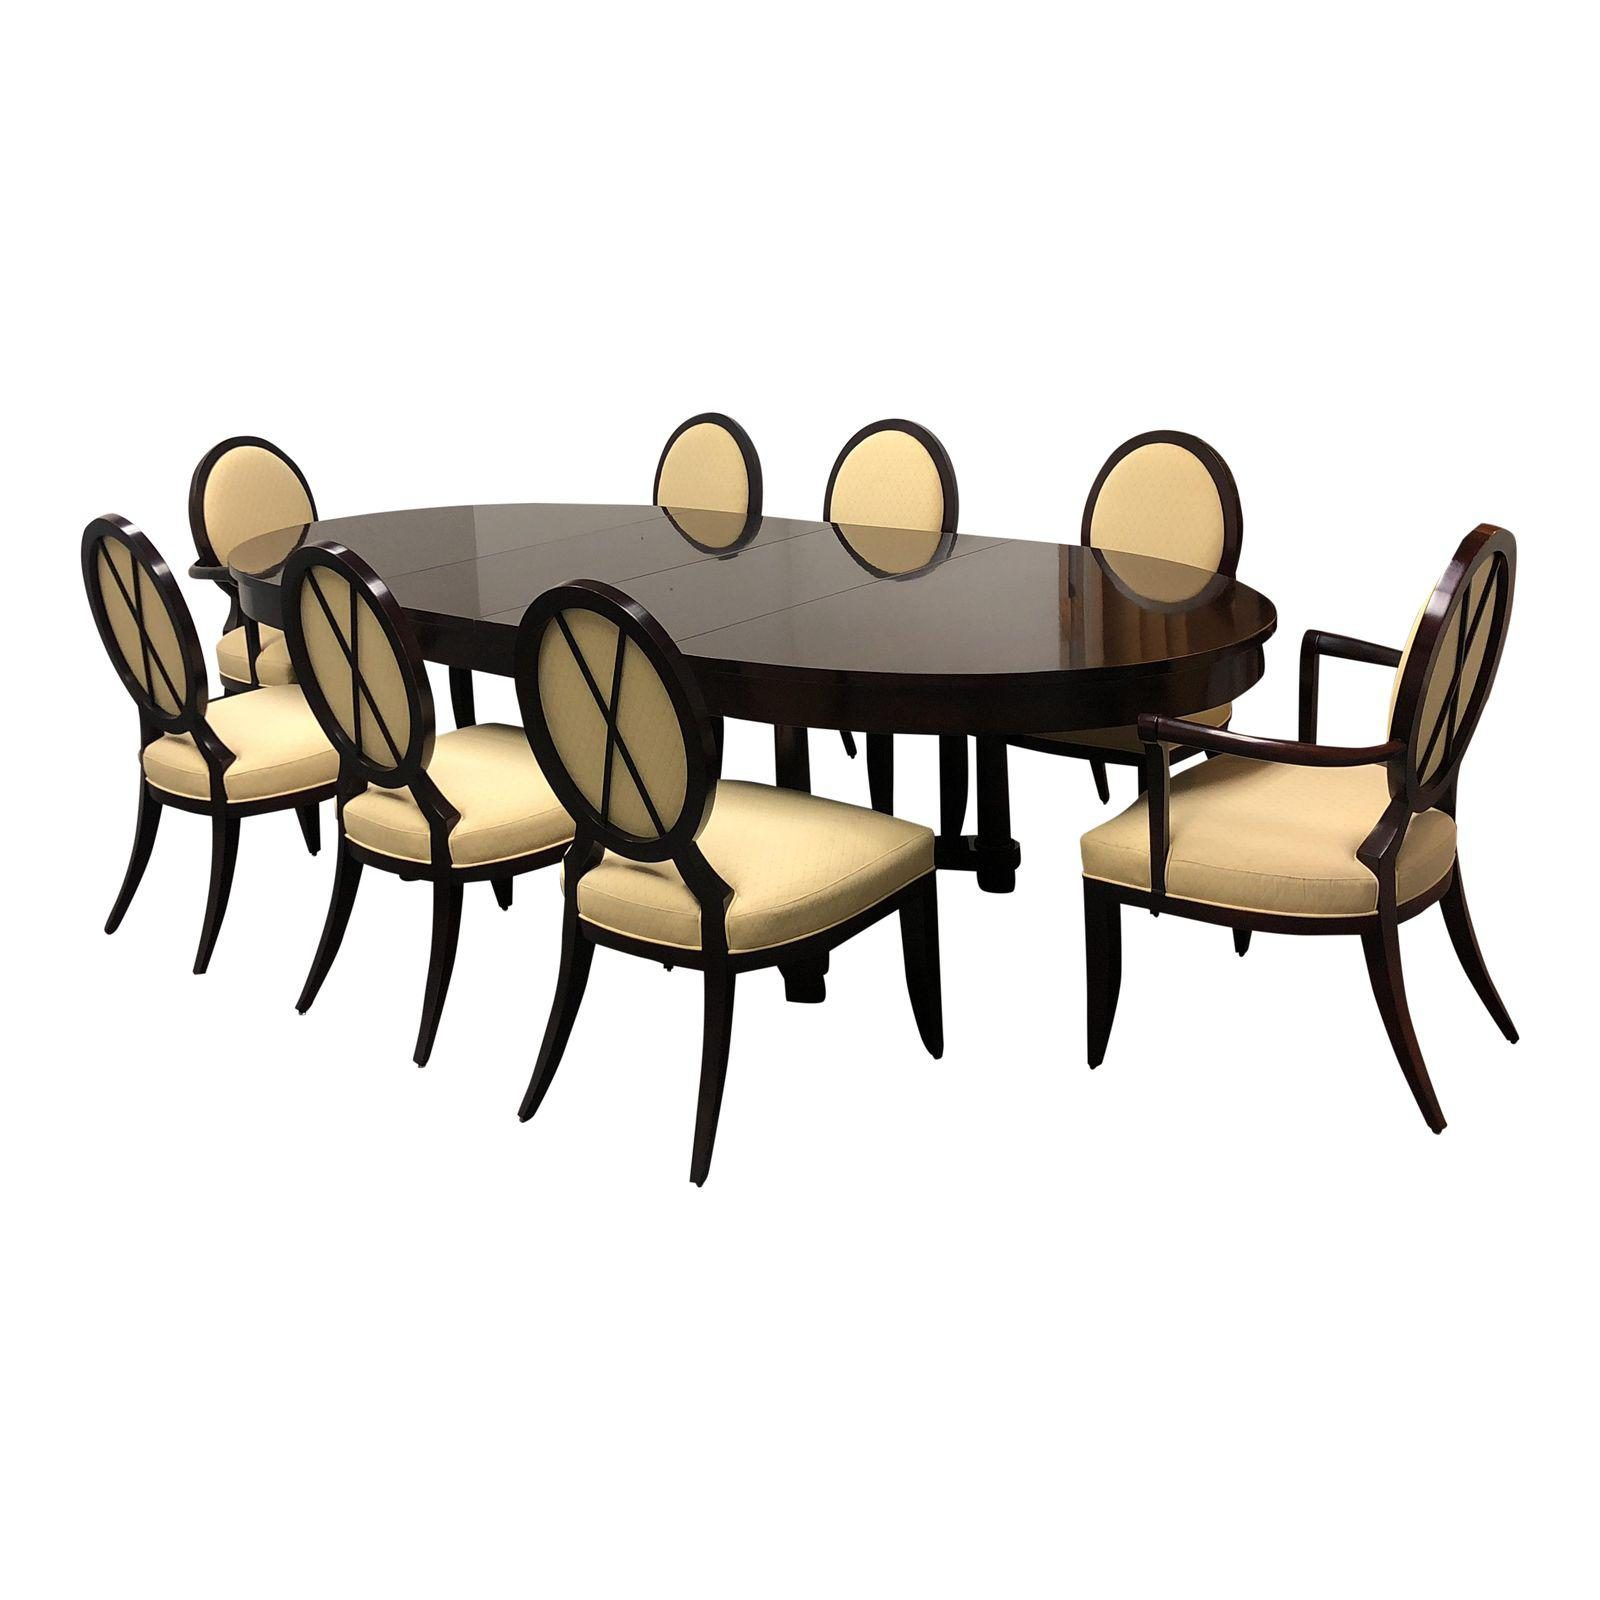 Barbara Barry Oval Dining Table 8 Chairs For Baker Set Of 9 Original Price 20 000 00 Design Plus Gallery